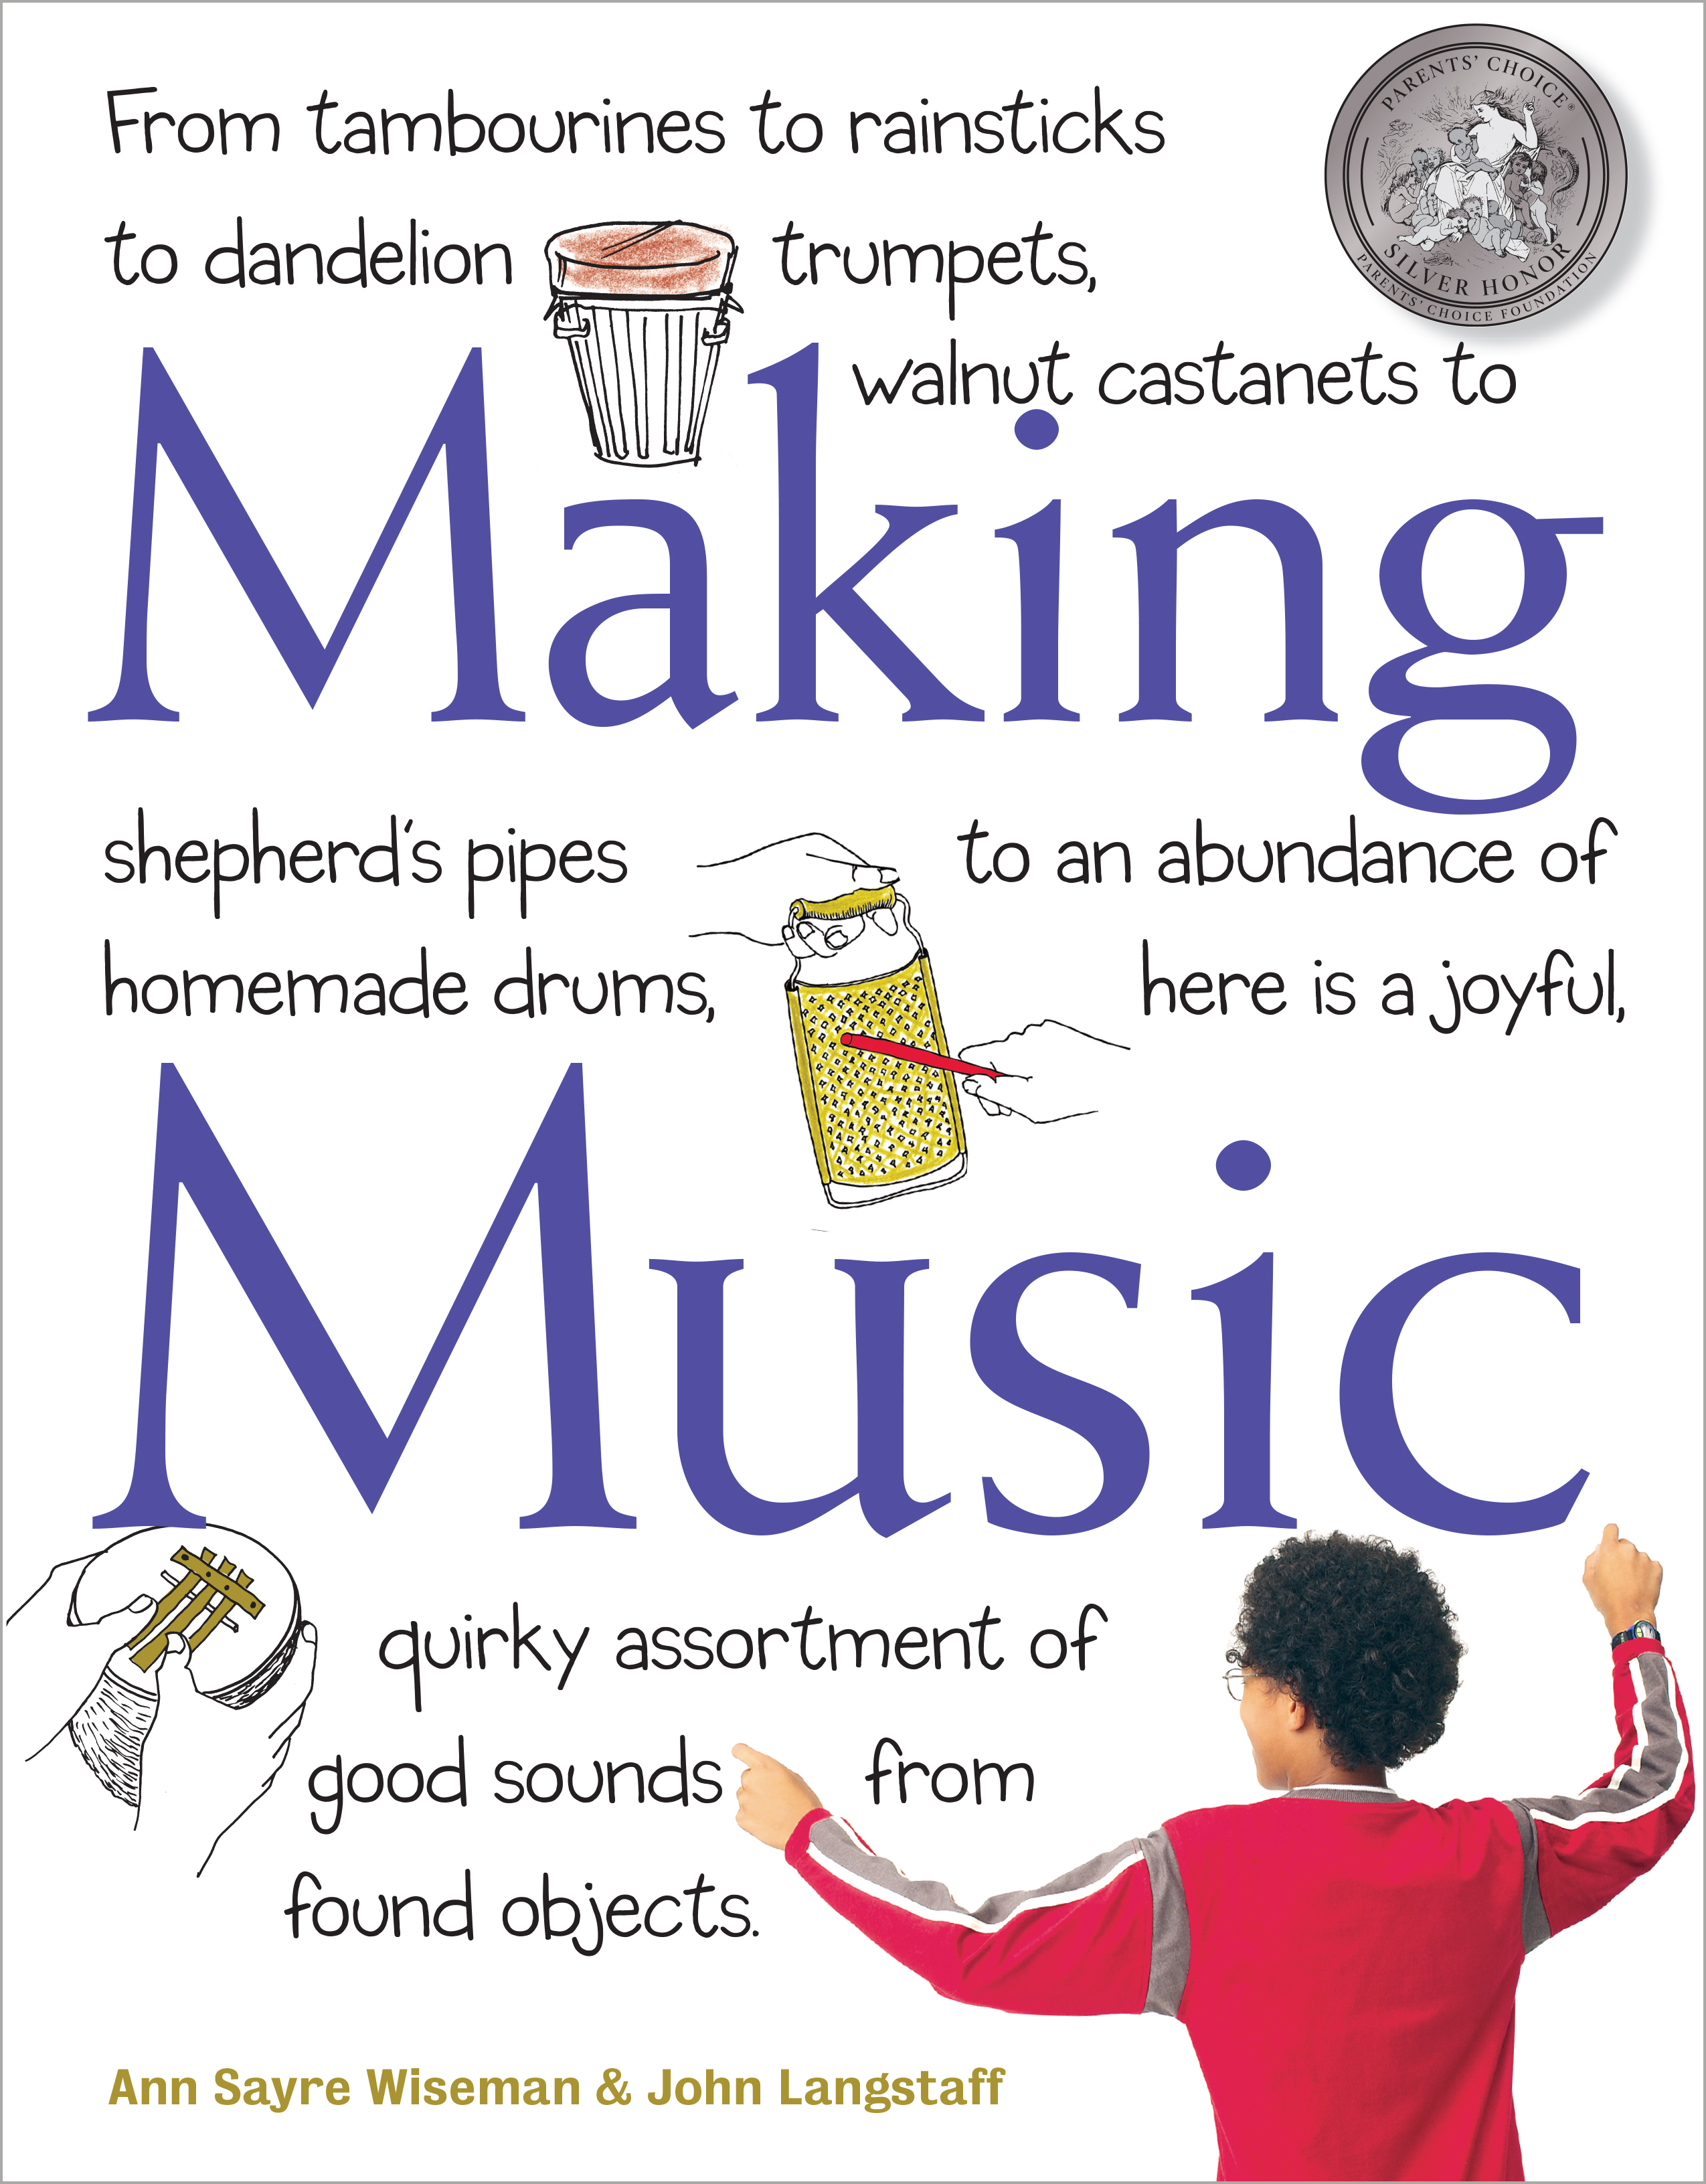 Making Music From Tambourines to Rainsticks to Dandelion Trumpets, Walnut Castanets to Shepherd's Pipes to an Abundance of Homemade Drums, Here Is a Joyful, Quirky Assortment of Good Sounds from Found Objects - John Langstaff